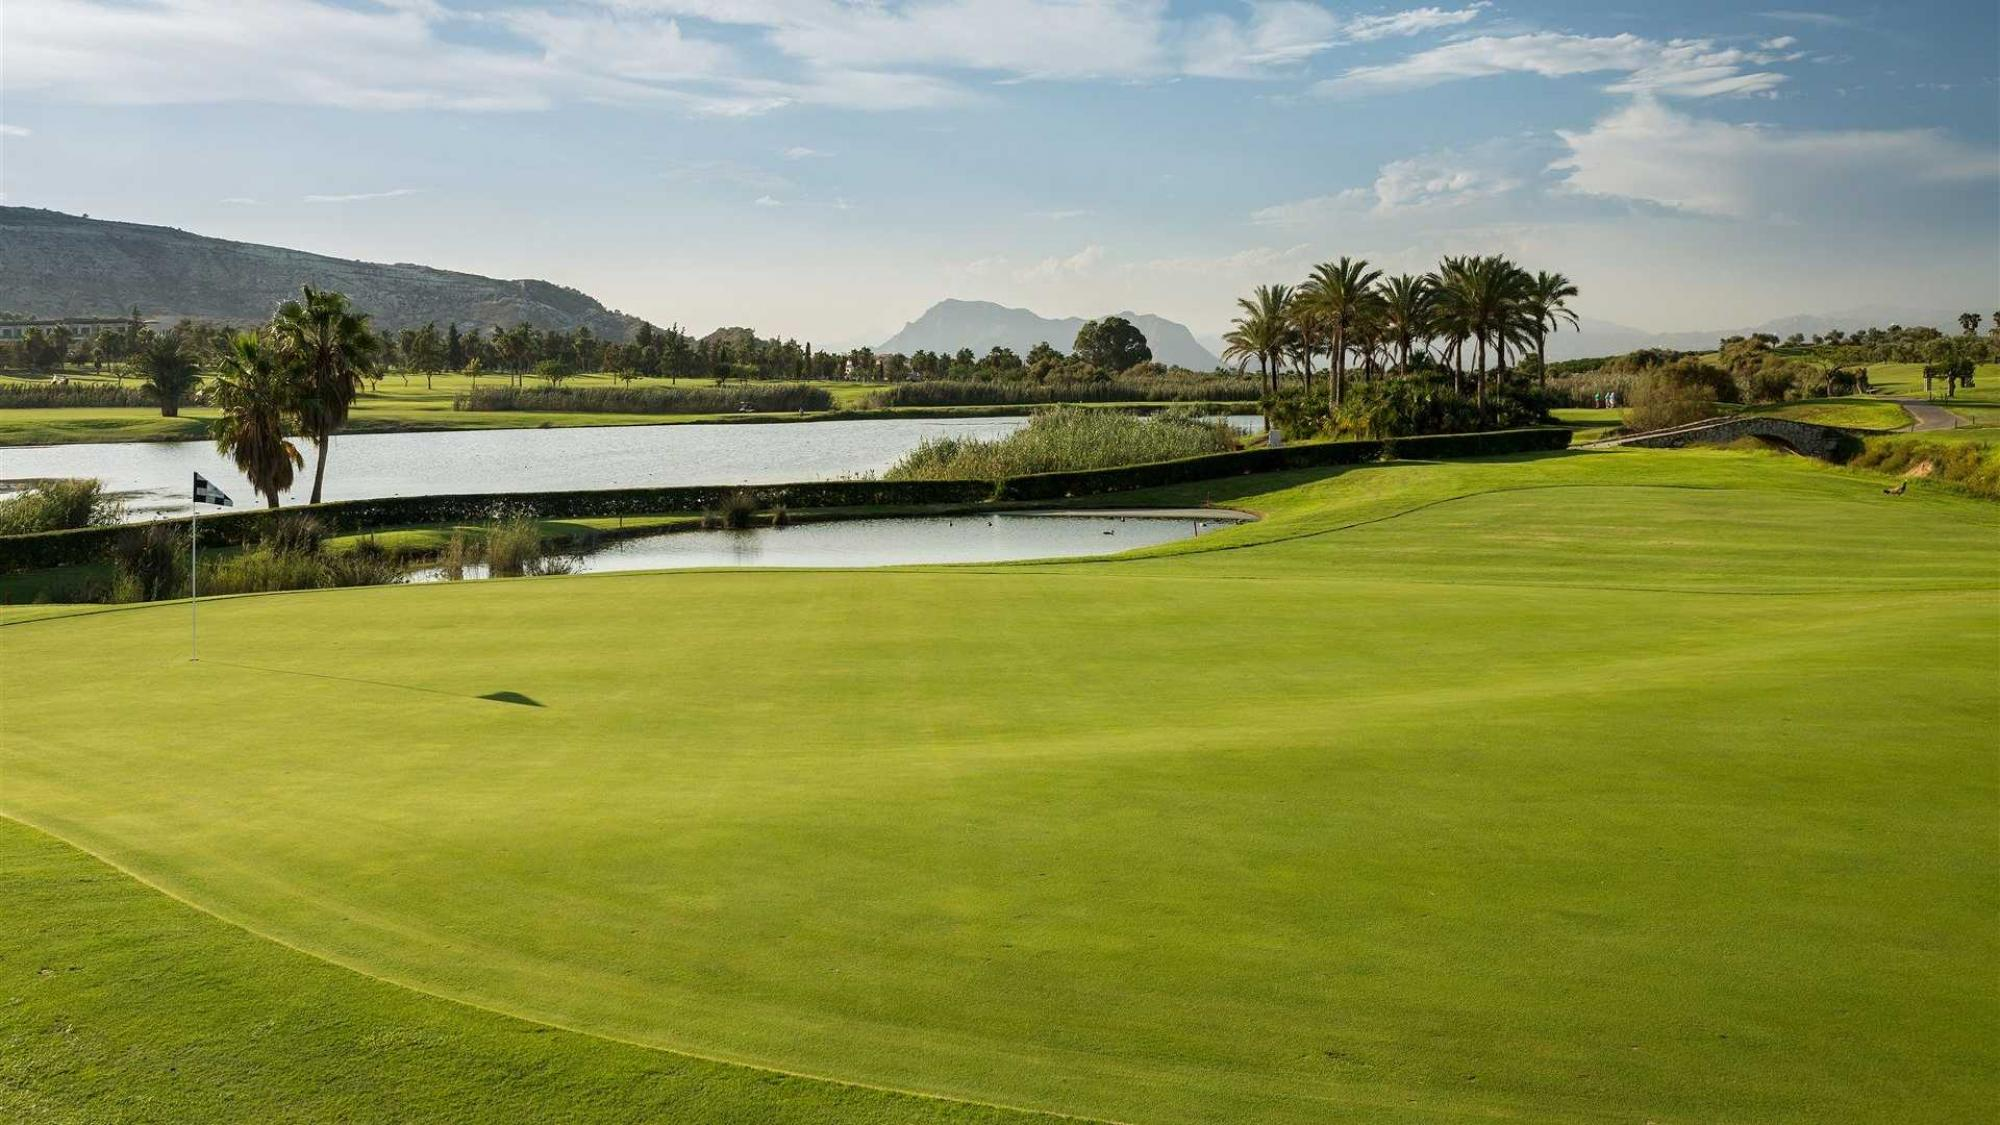 The Las Ramblas Golf Course's beautiful golf course in striking Costa Blanca.